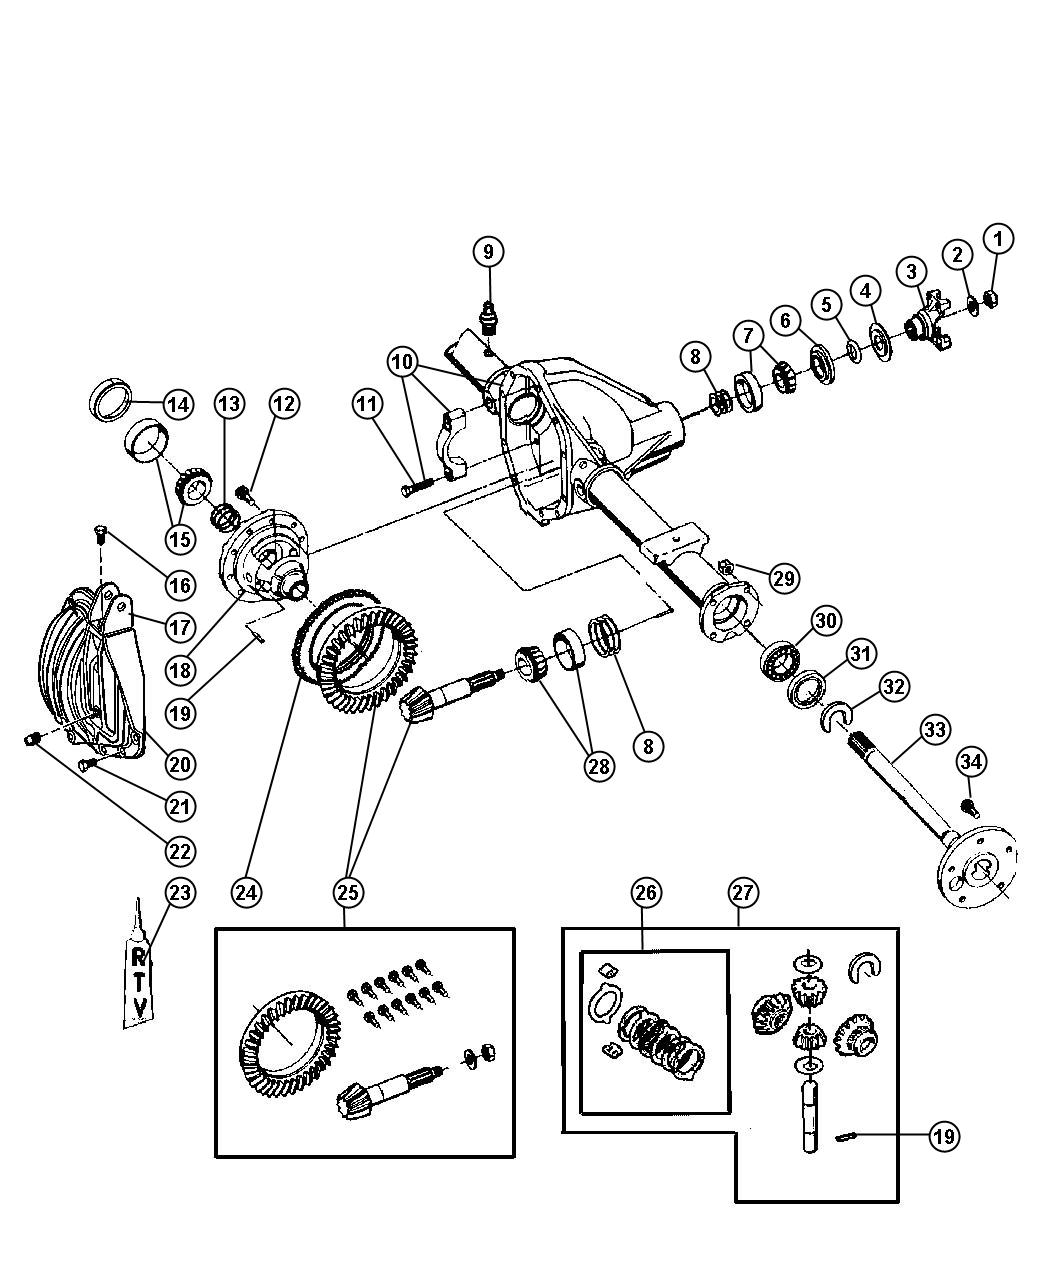 dana 80 rear axle diagram two way light switch wiring 60 parts pictures to pin on pinterest pinsdaddy